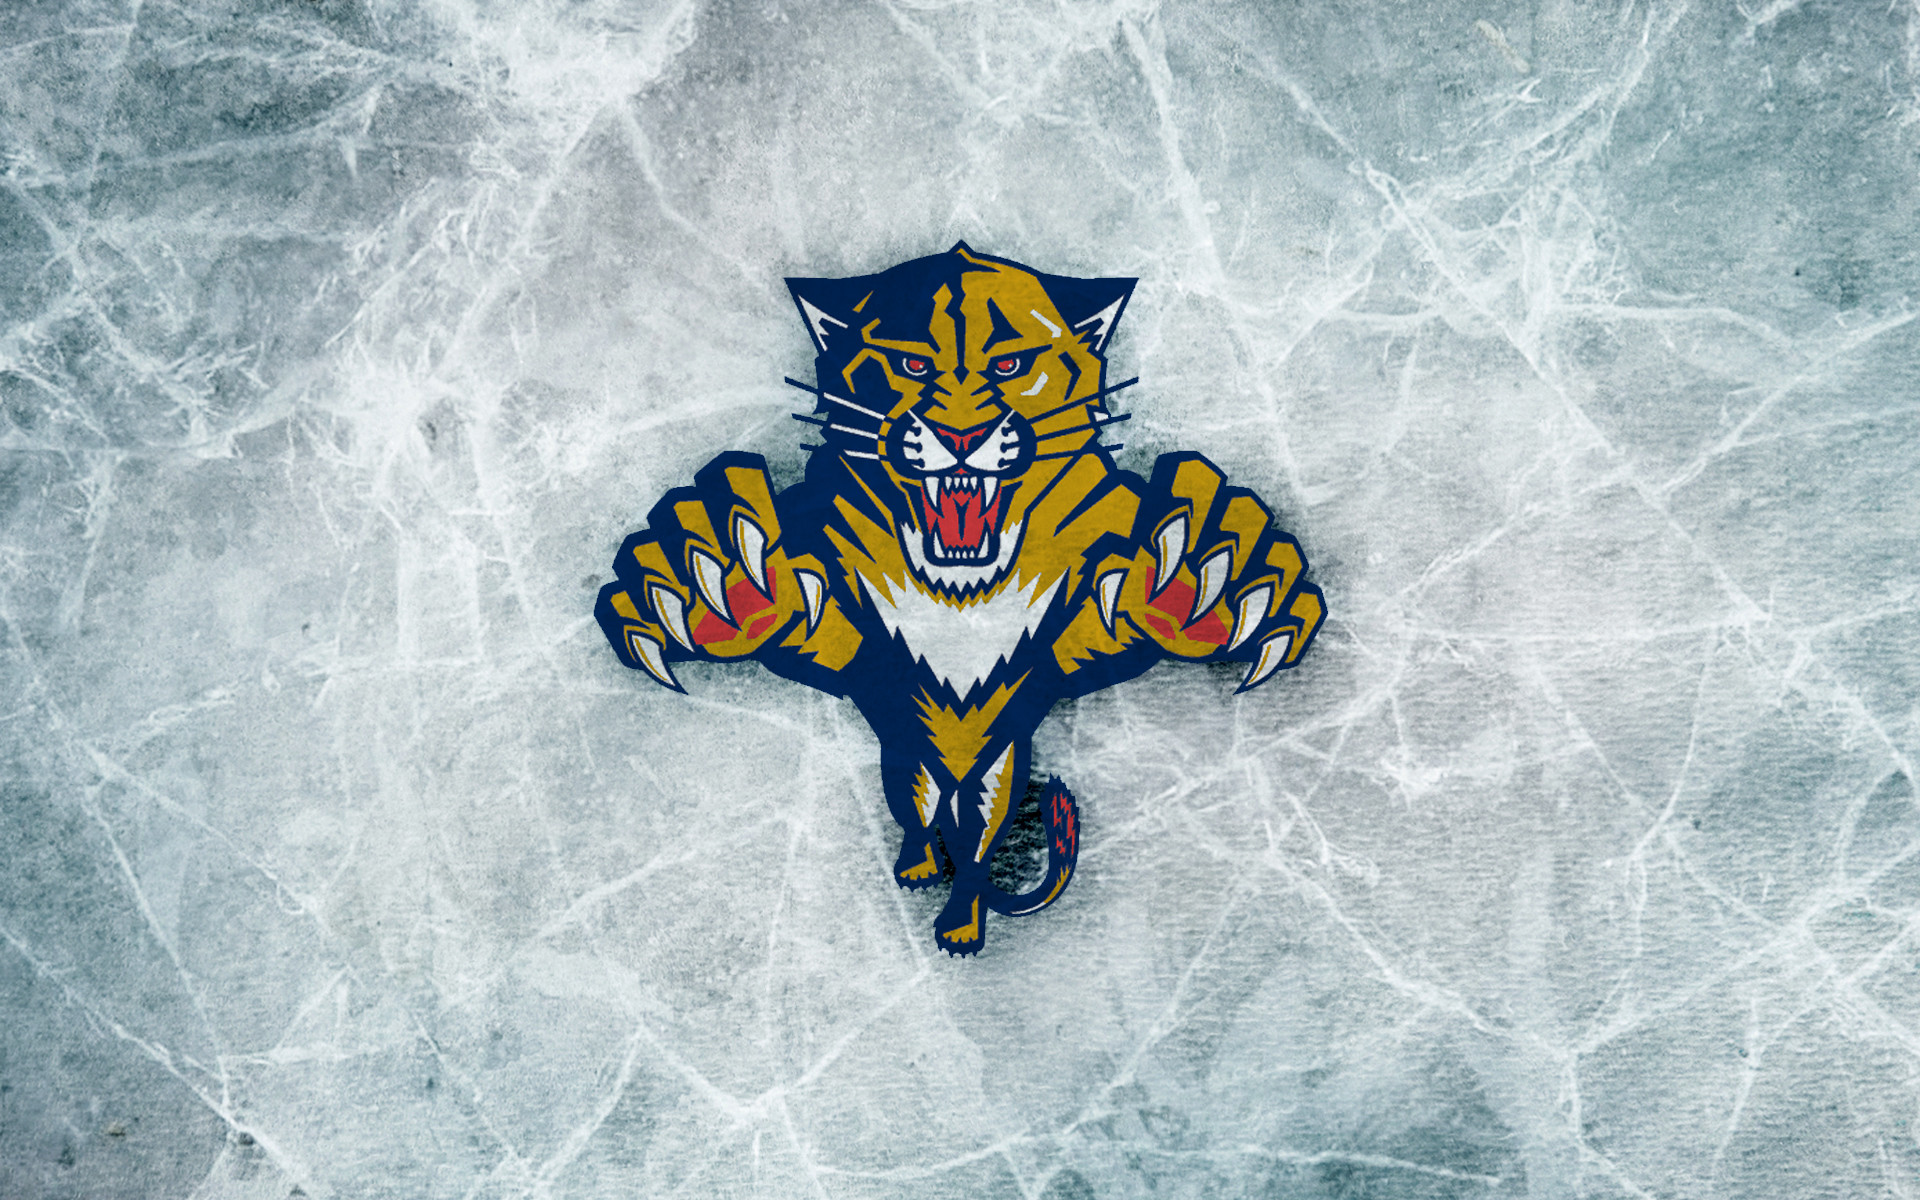 1920x1200 Florida Panthers Logo wallpaper - 636684